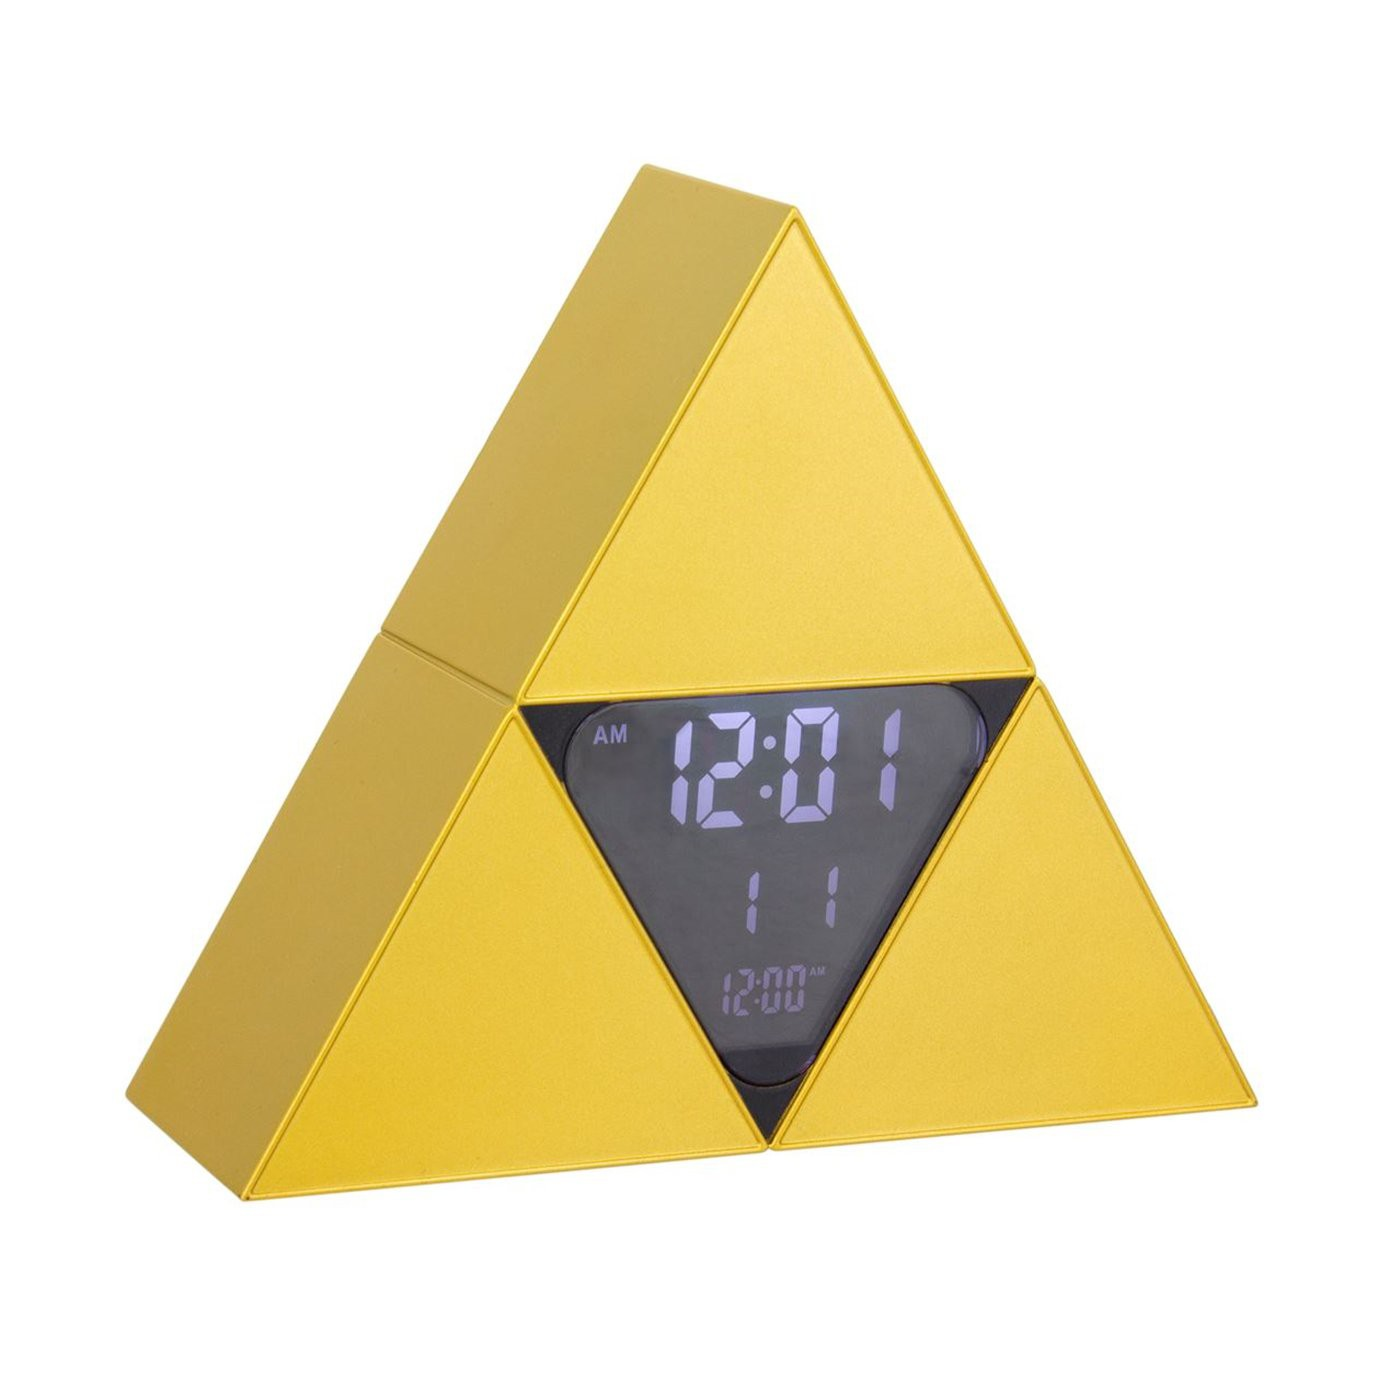 Zelda Tri-Force Alarm Clock